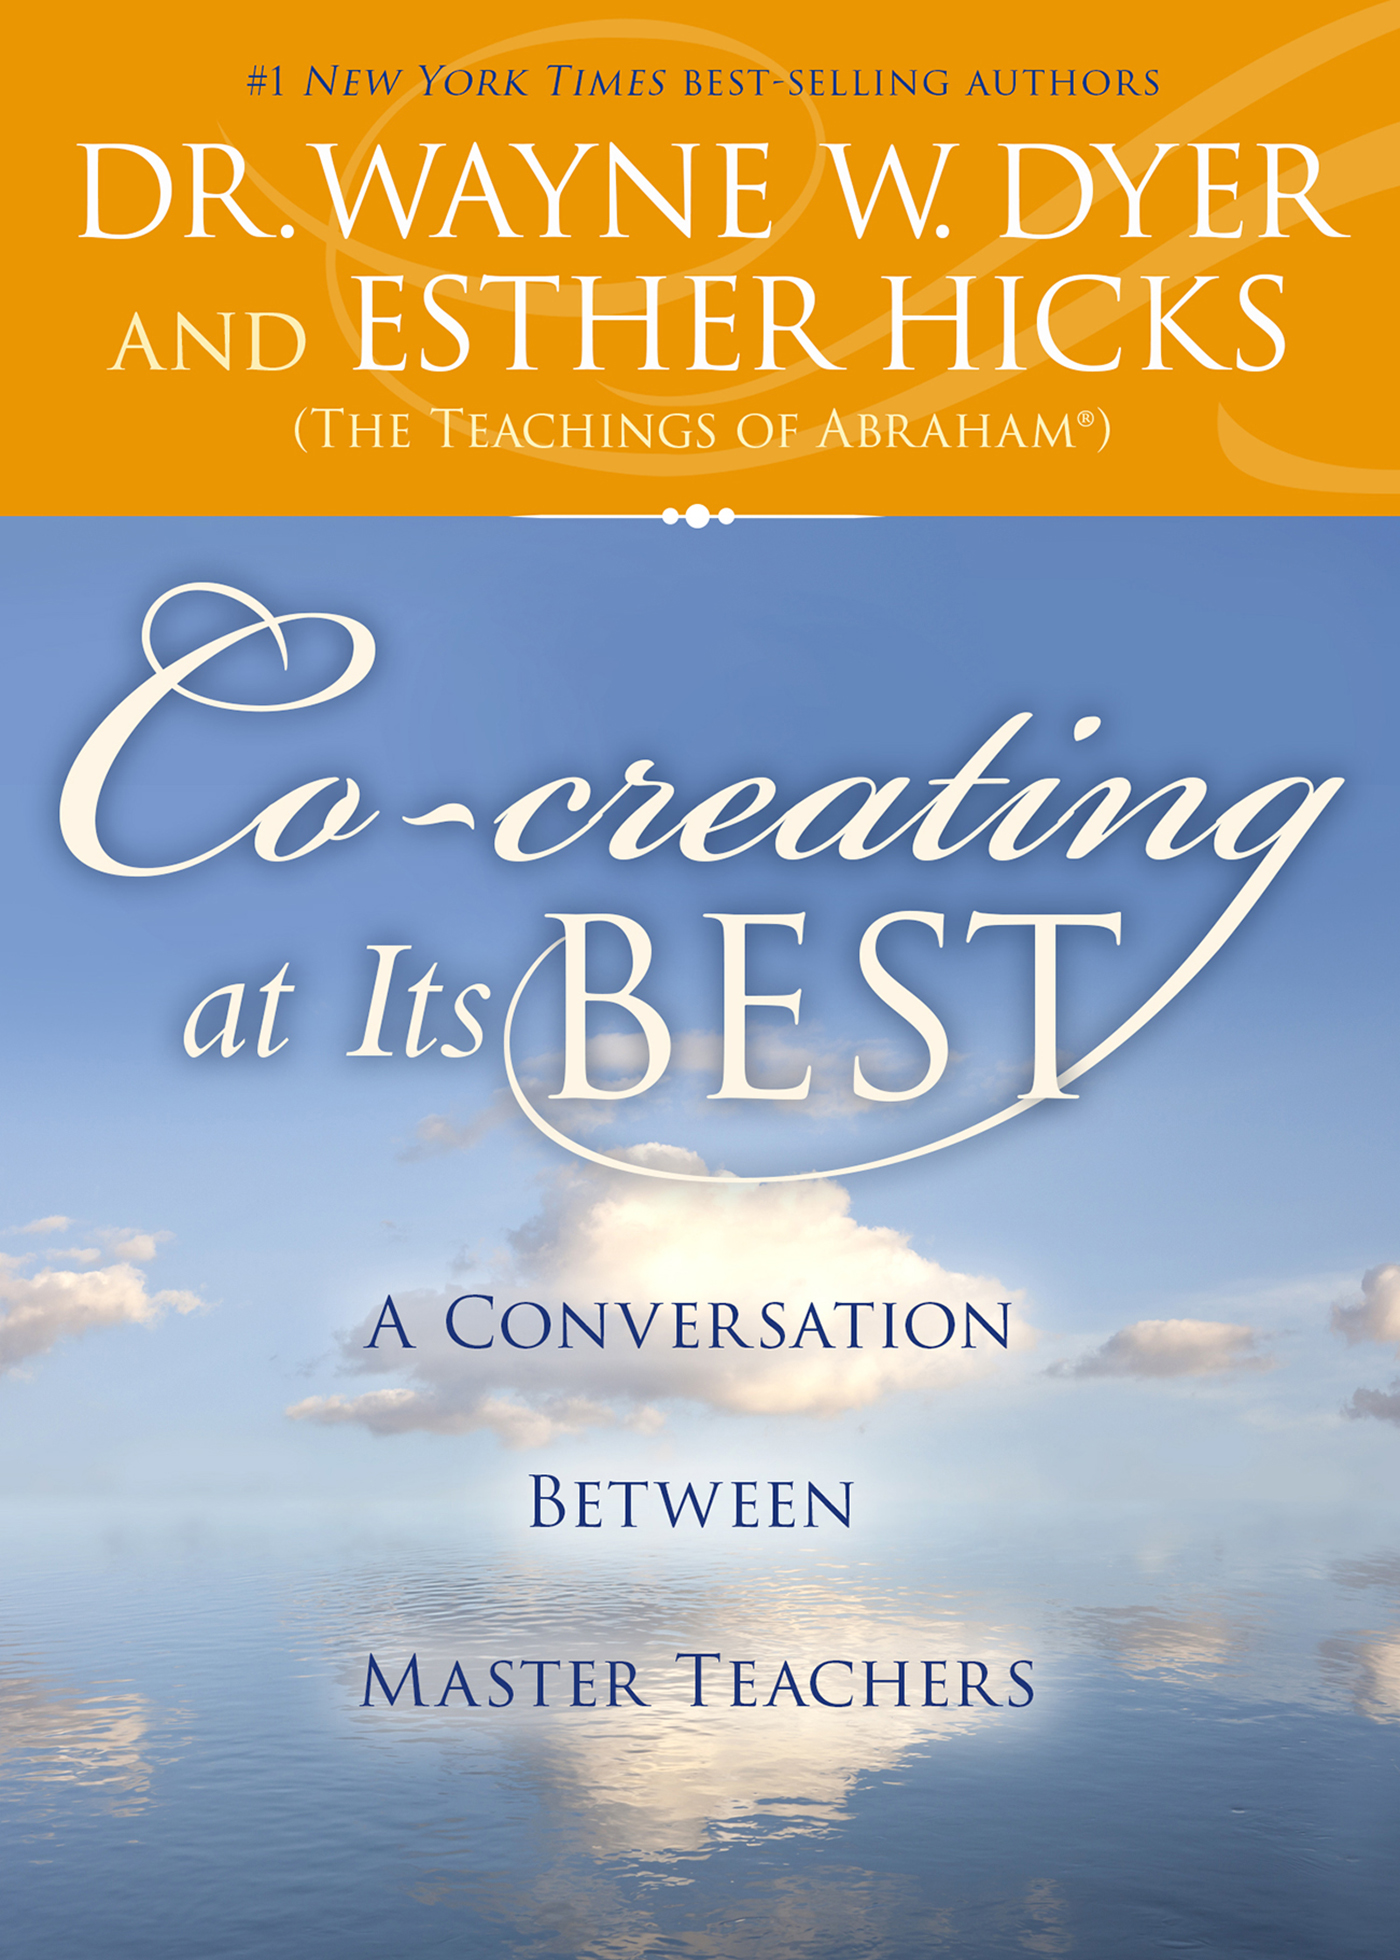 Co-creating at Its Best A Conversation Between Master Teachers